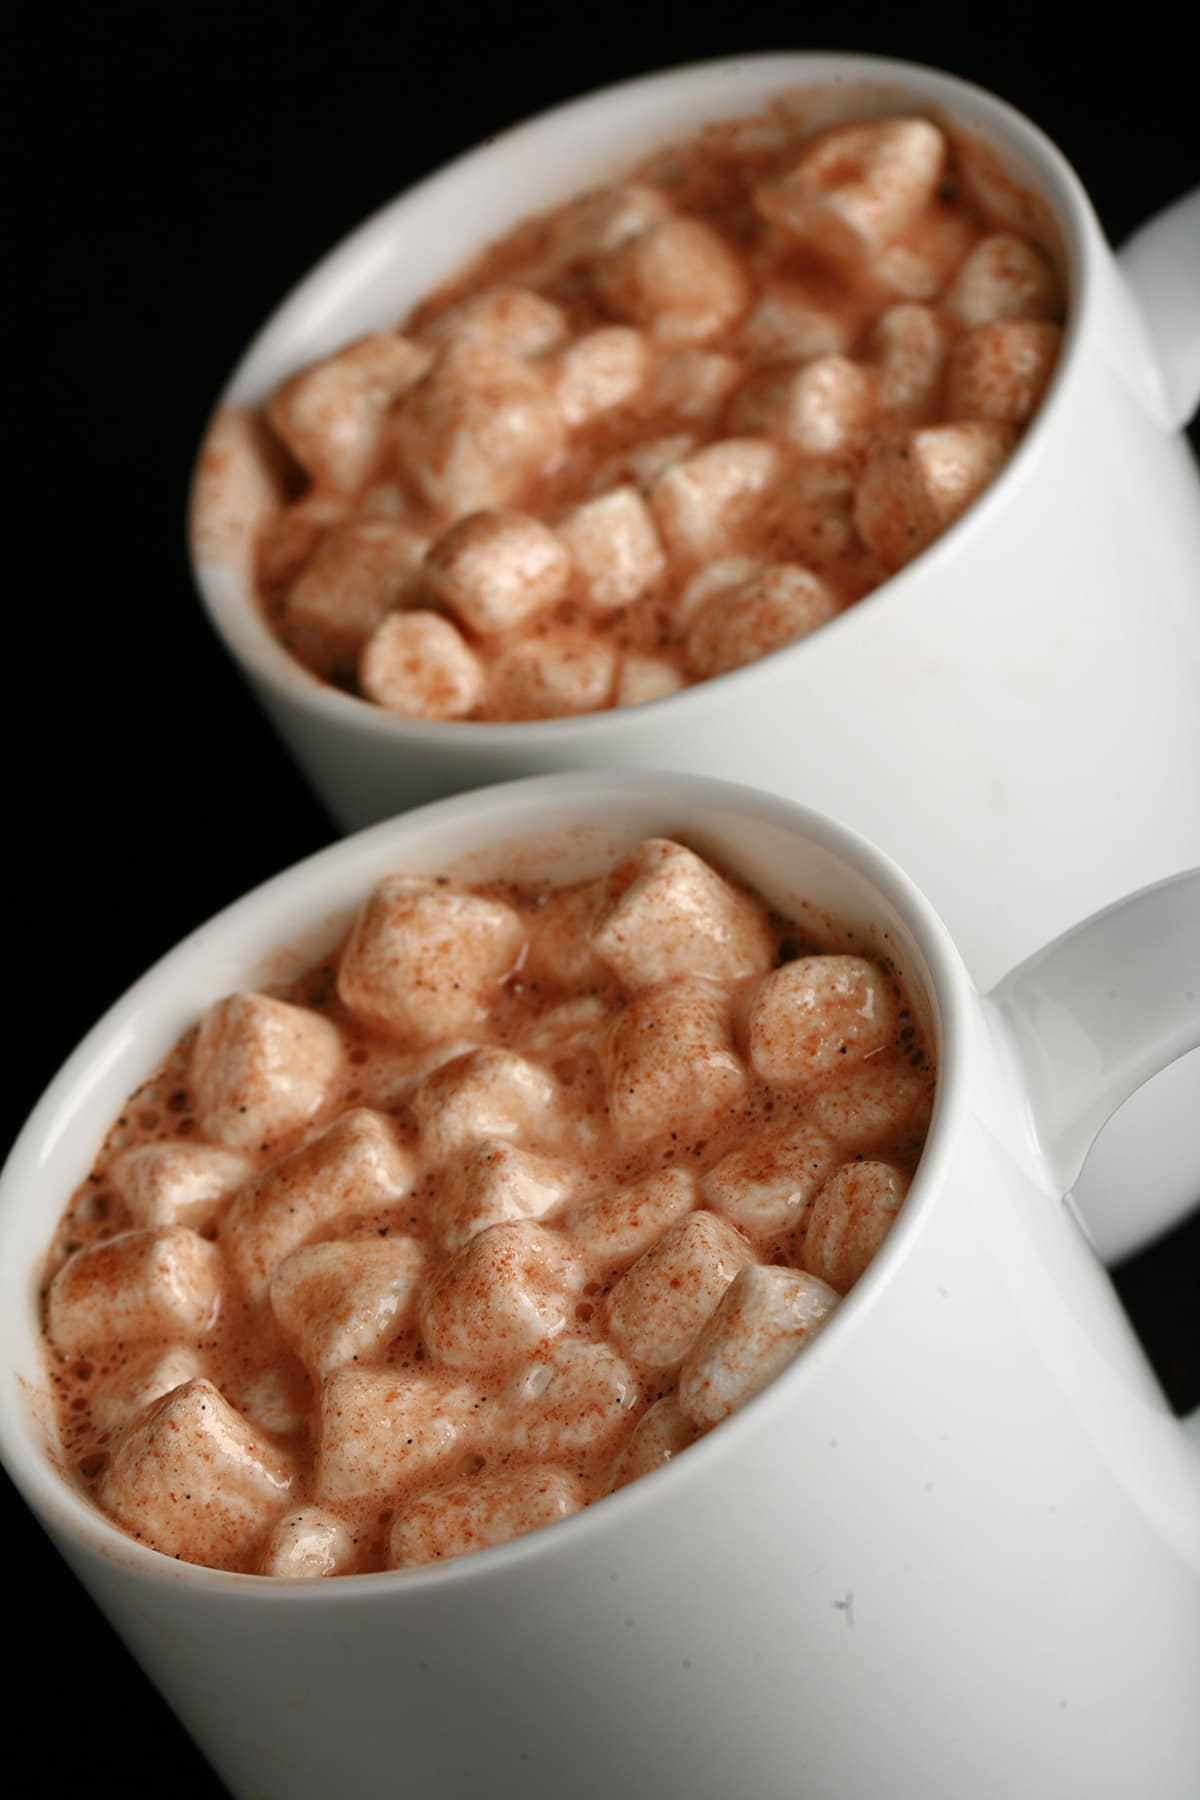 2 white mugs of grownup hot chocolate, with mini marshmallows and alcohol.